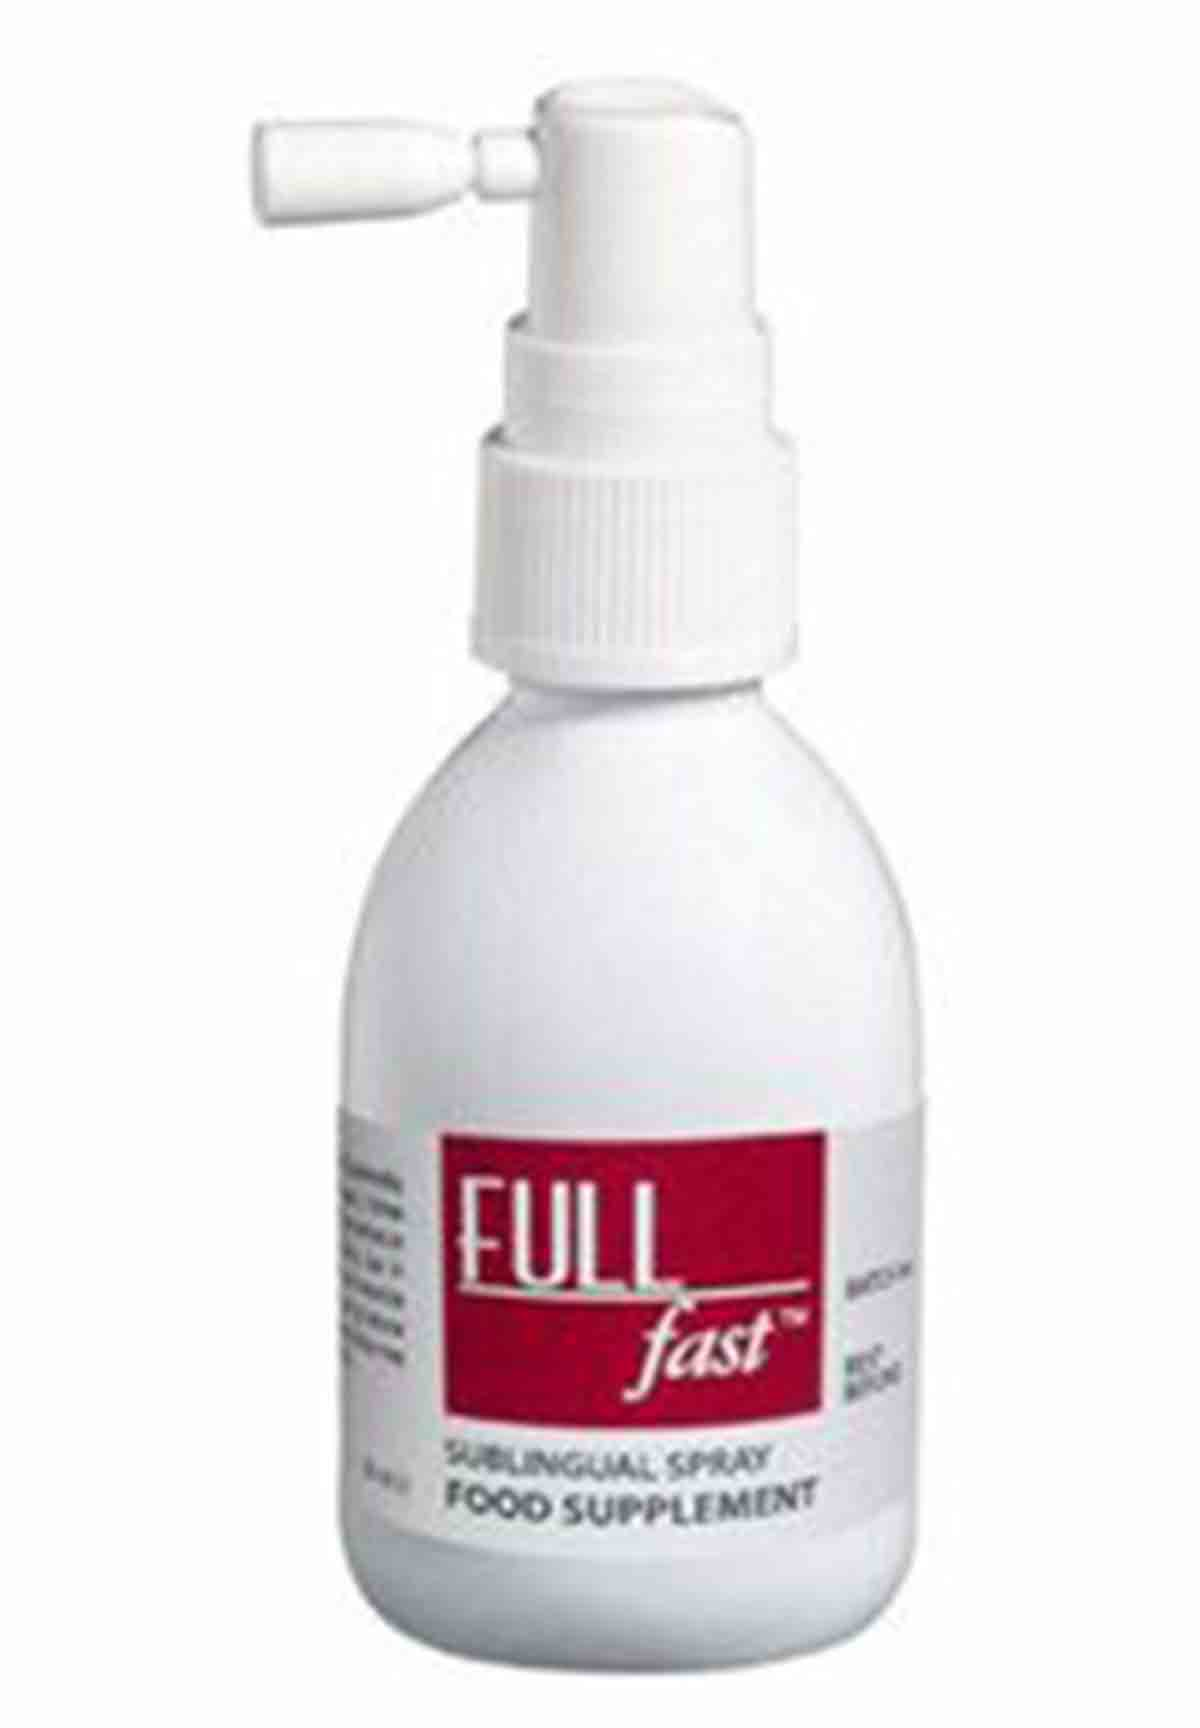 Full Fast oral weight loss spray